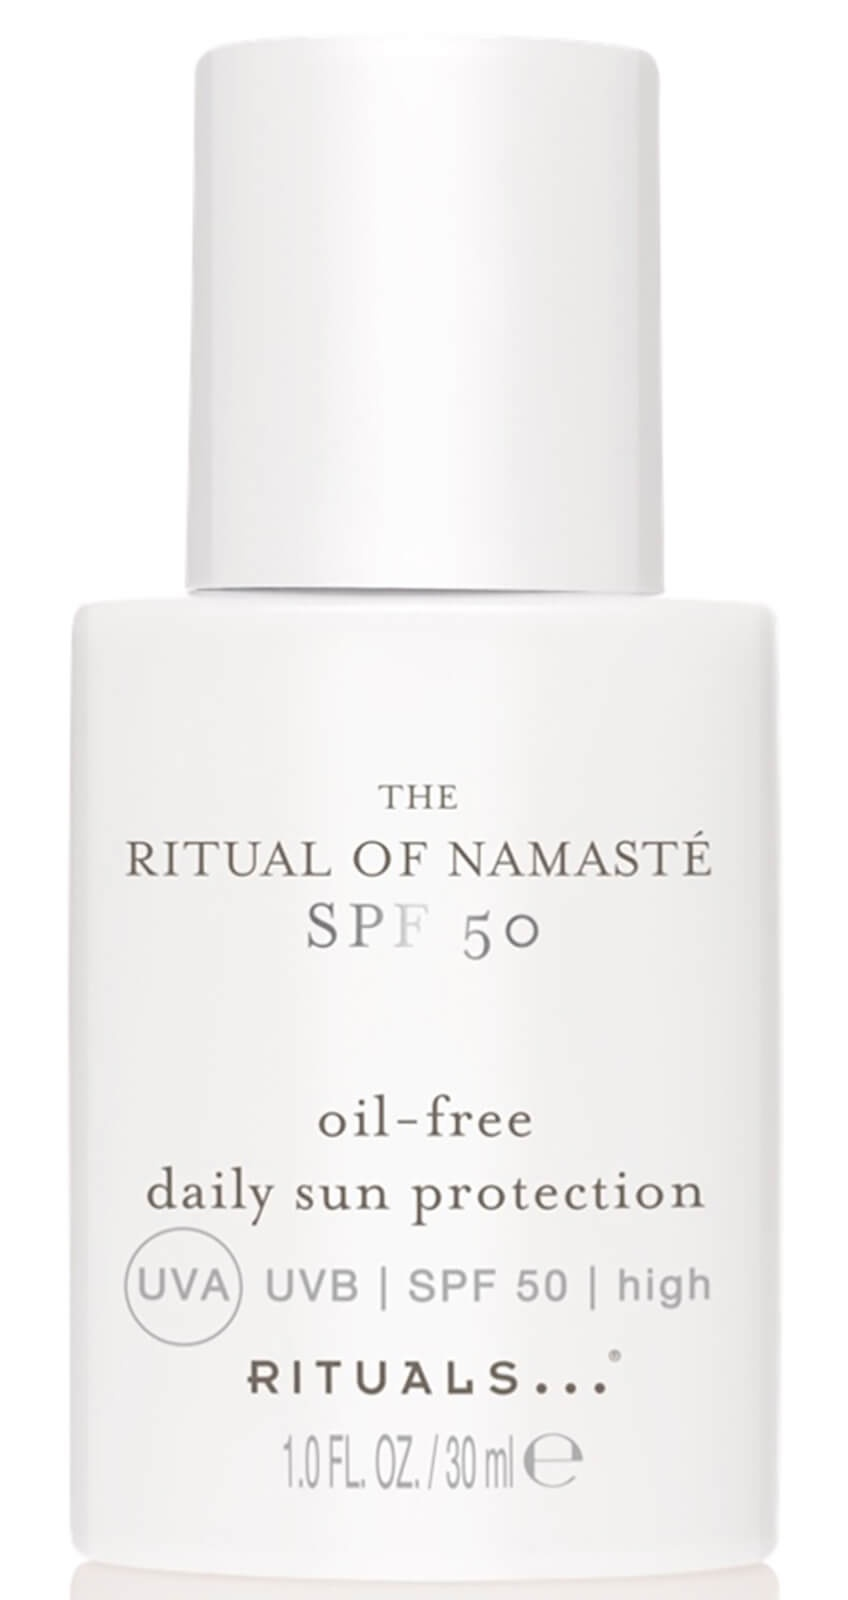 RITUALS Oil-Free Daily Sun Protection